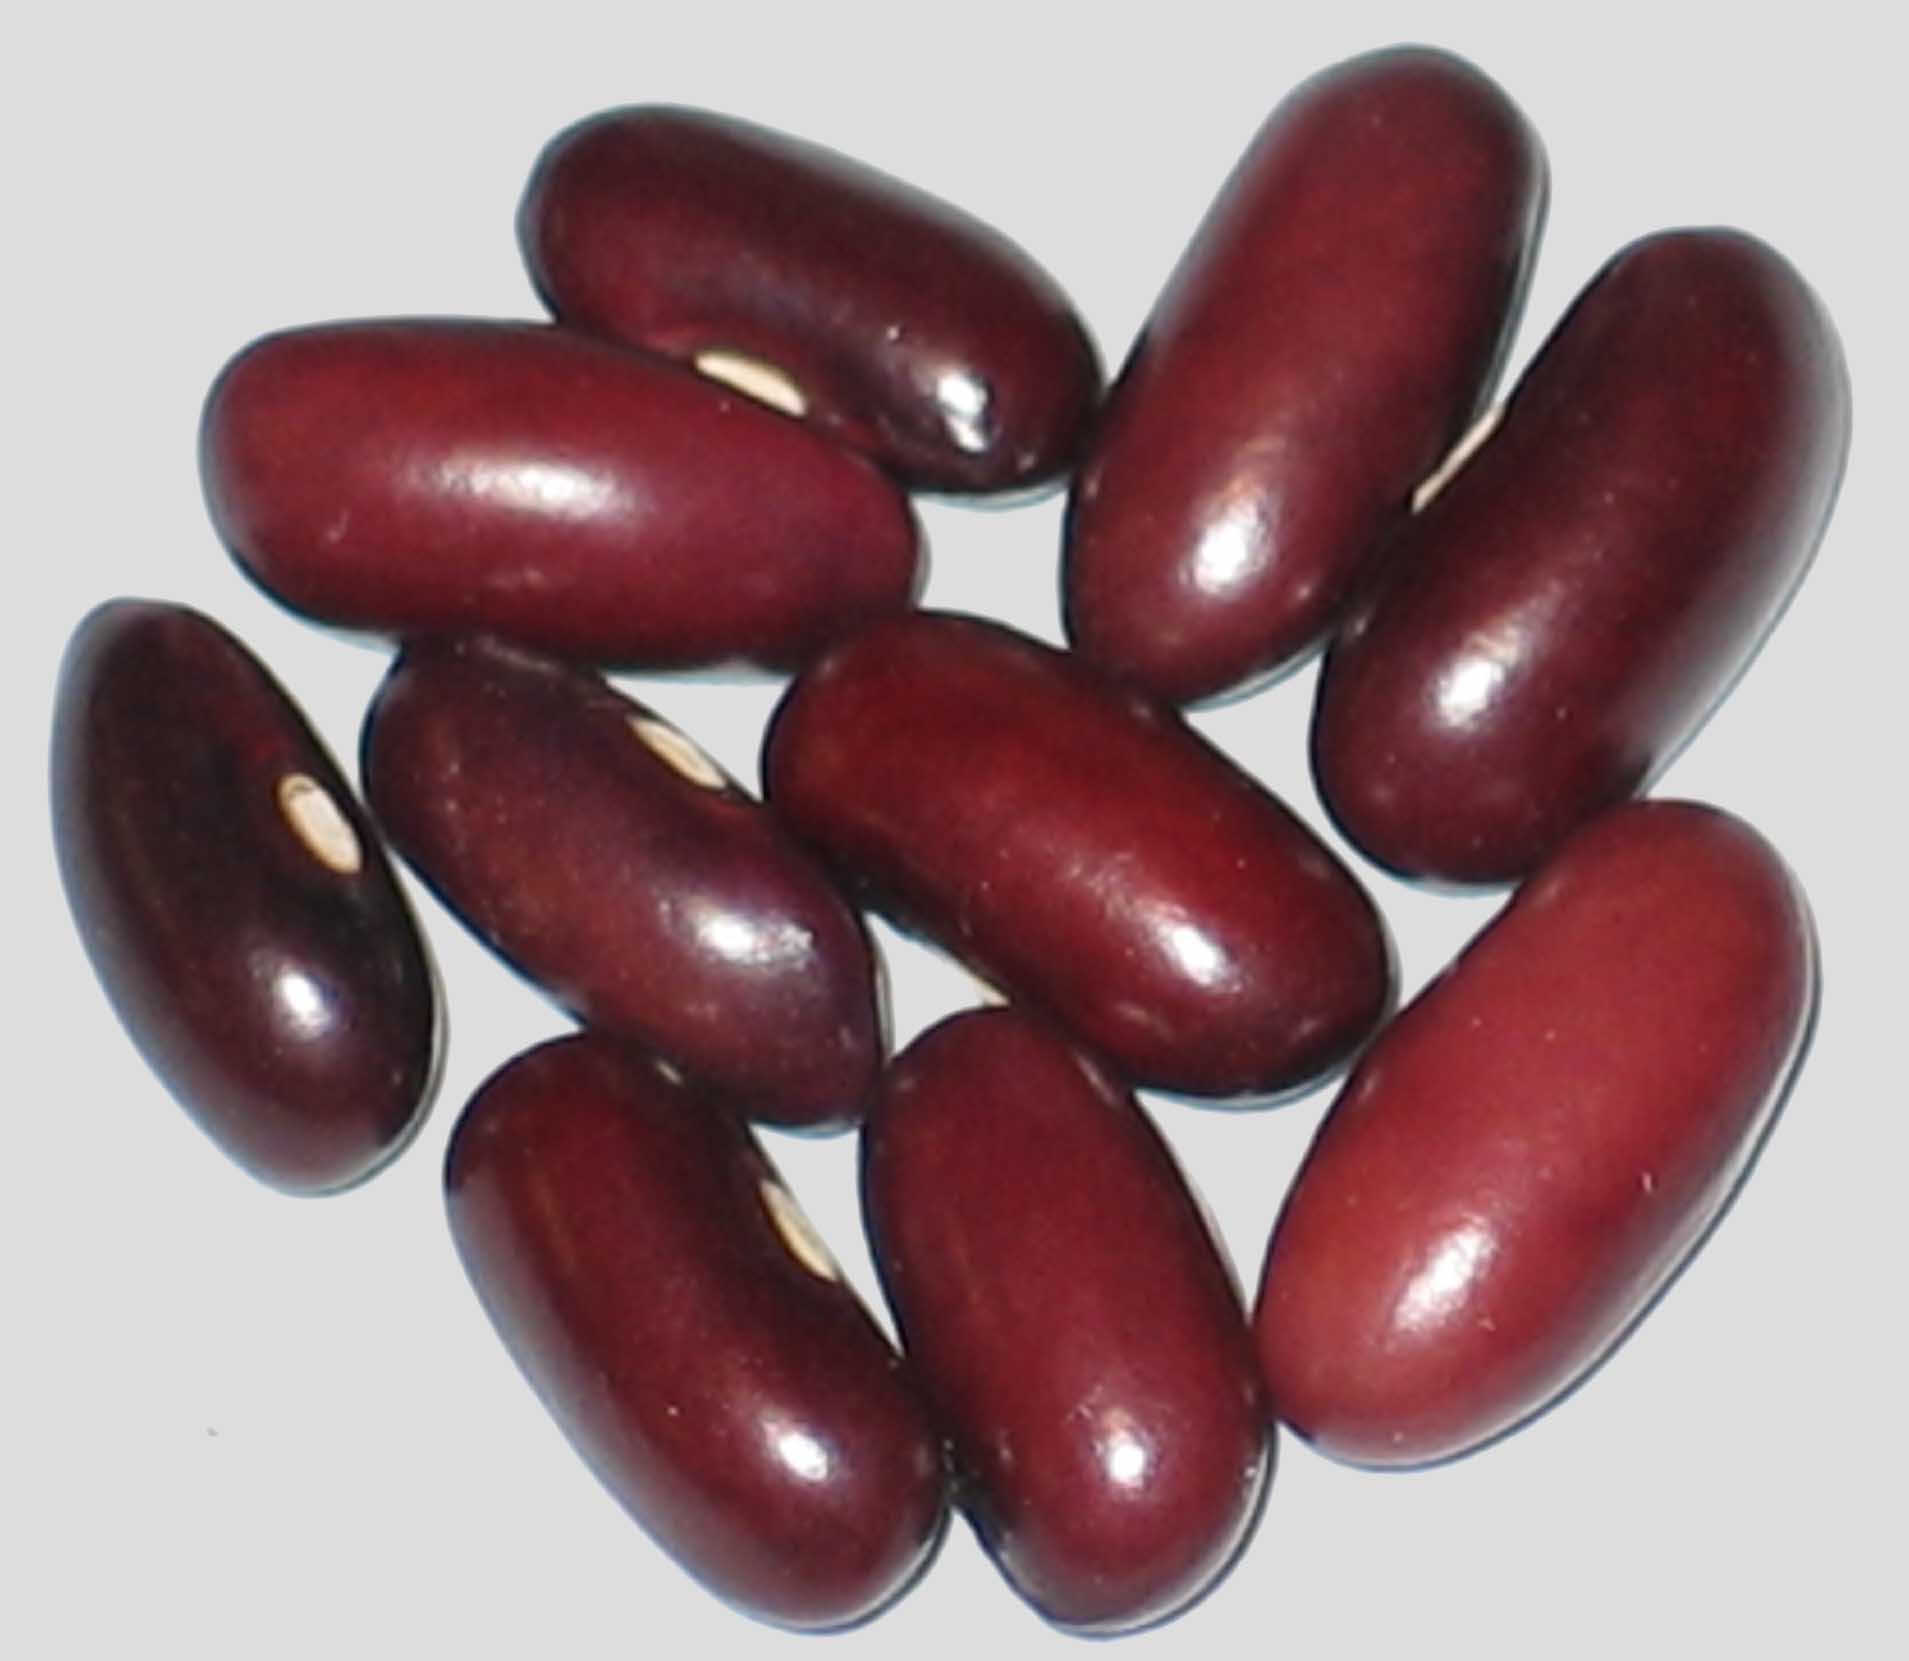 image of John's Best beans